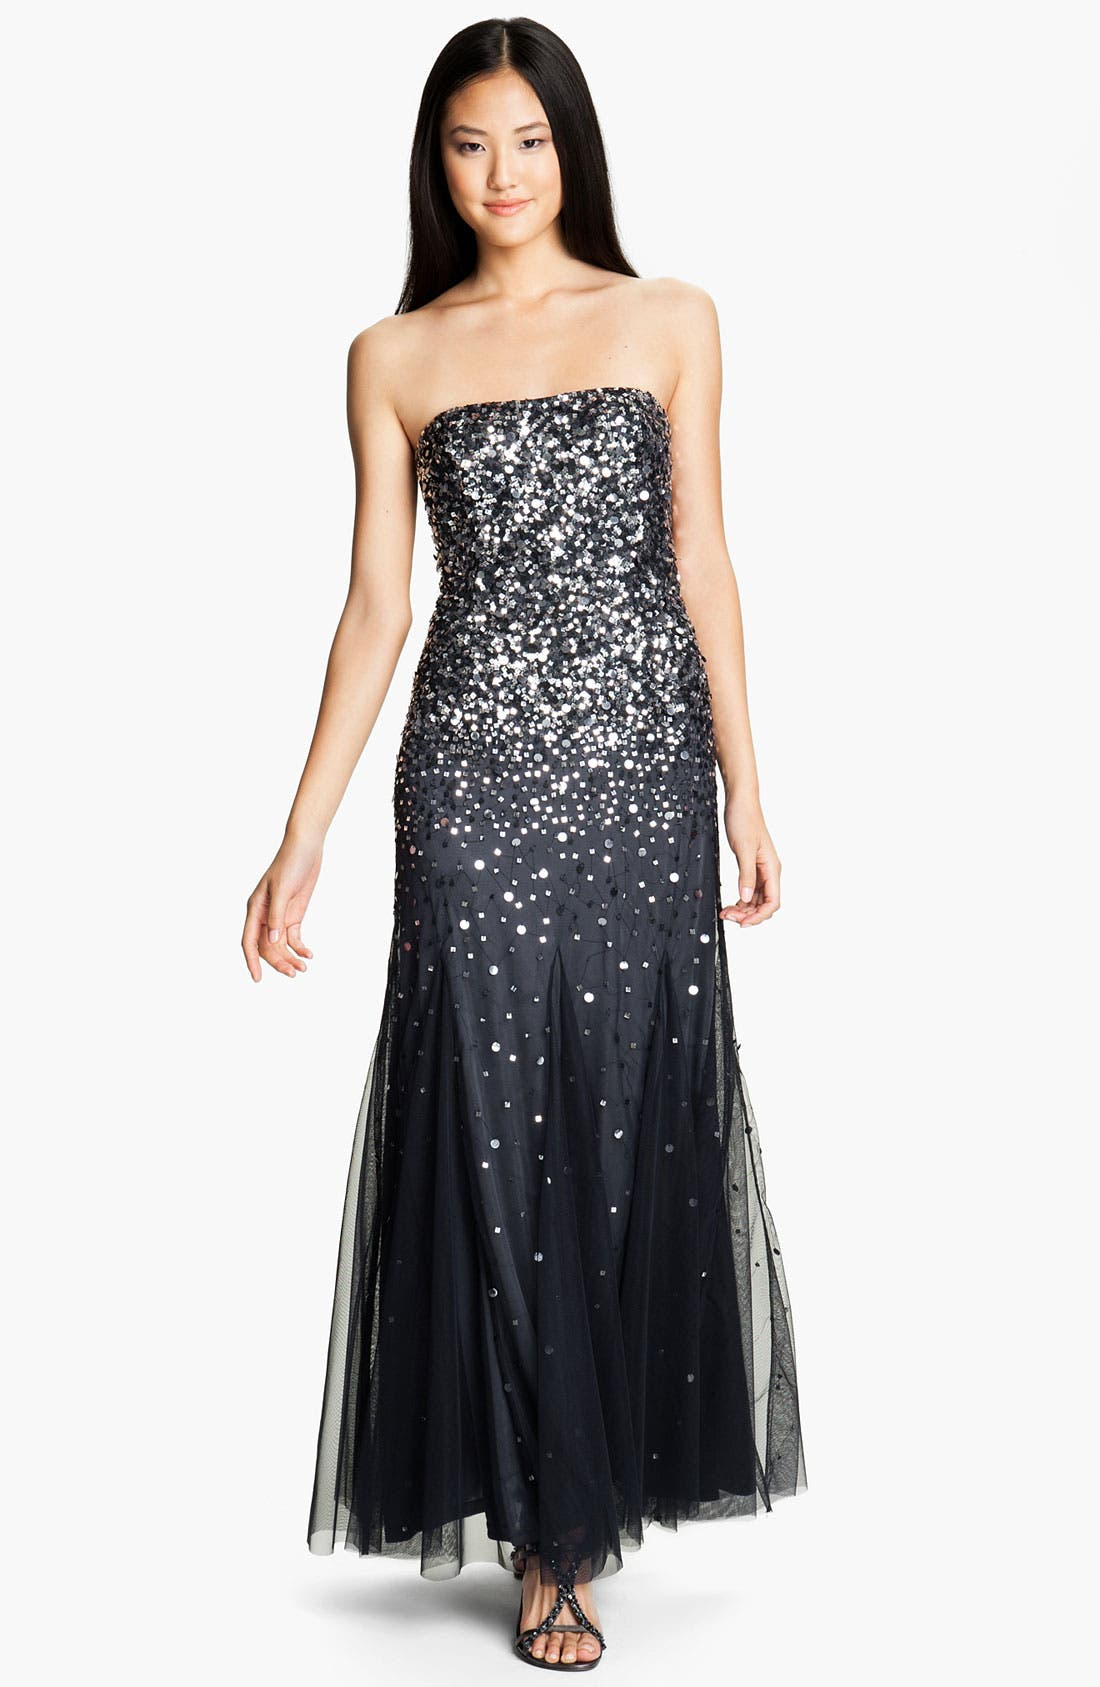 Main Image - Adrianna Papell Strapless Sequin Godet Gown